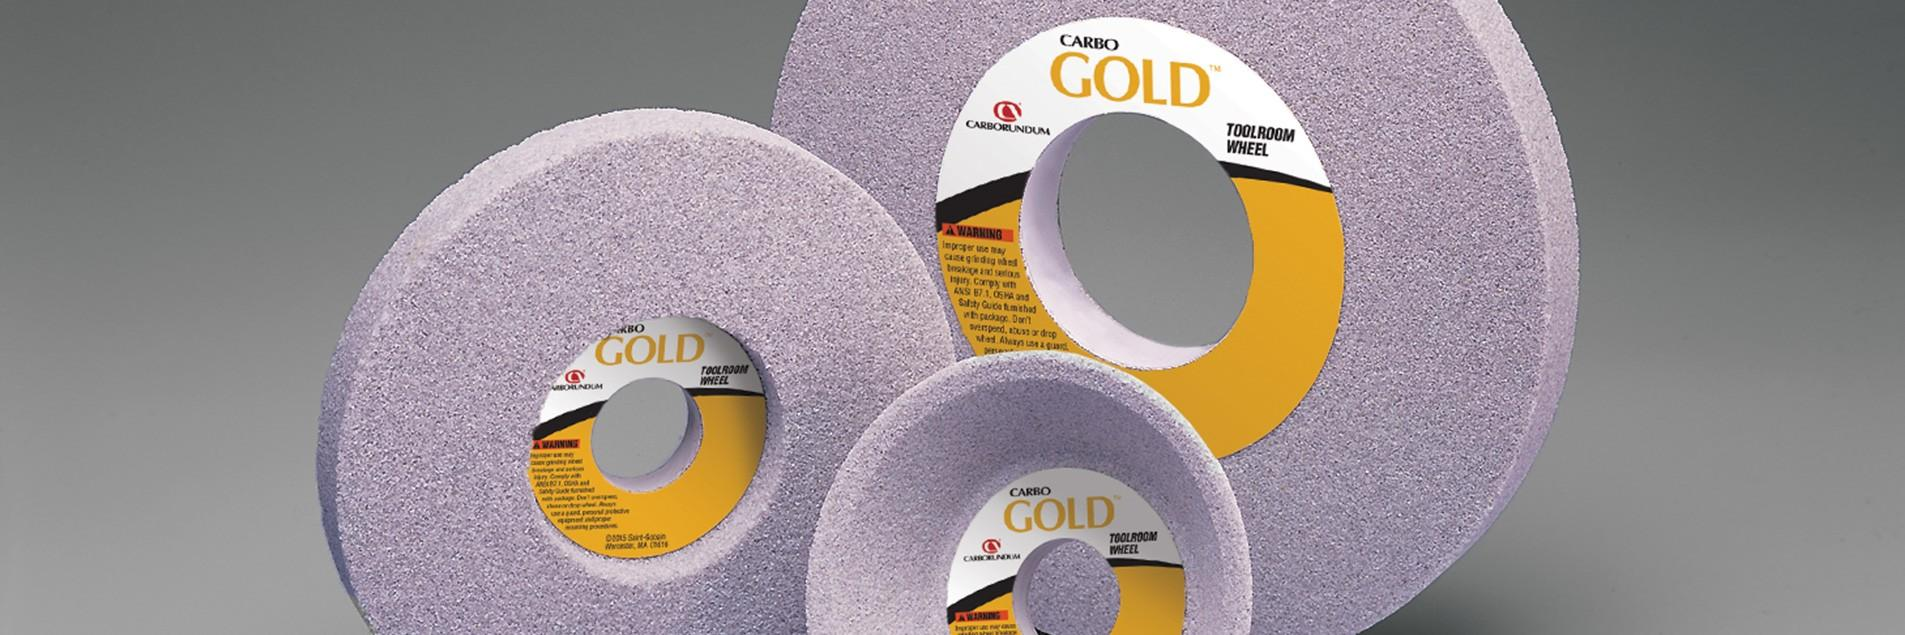 Carbo Gold Toolroom Grinding Wheels